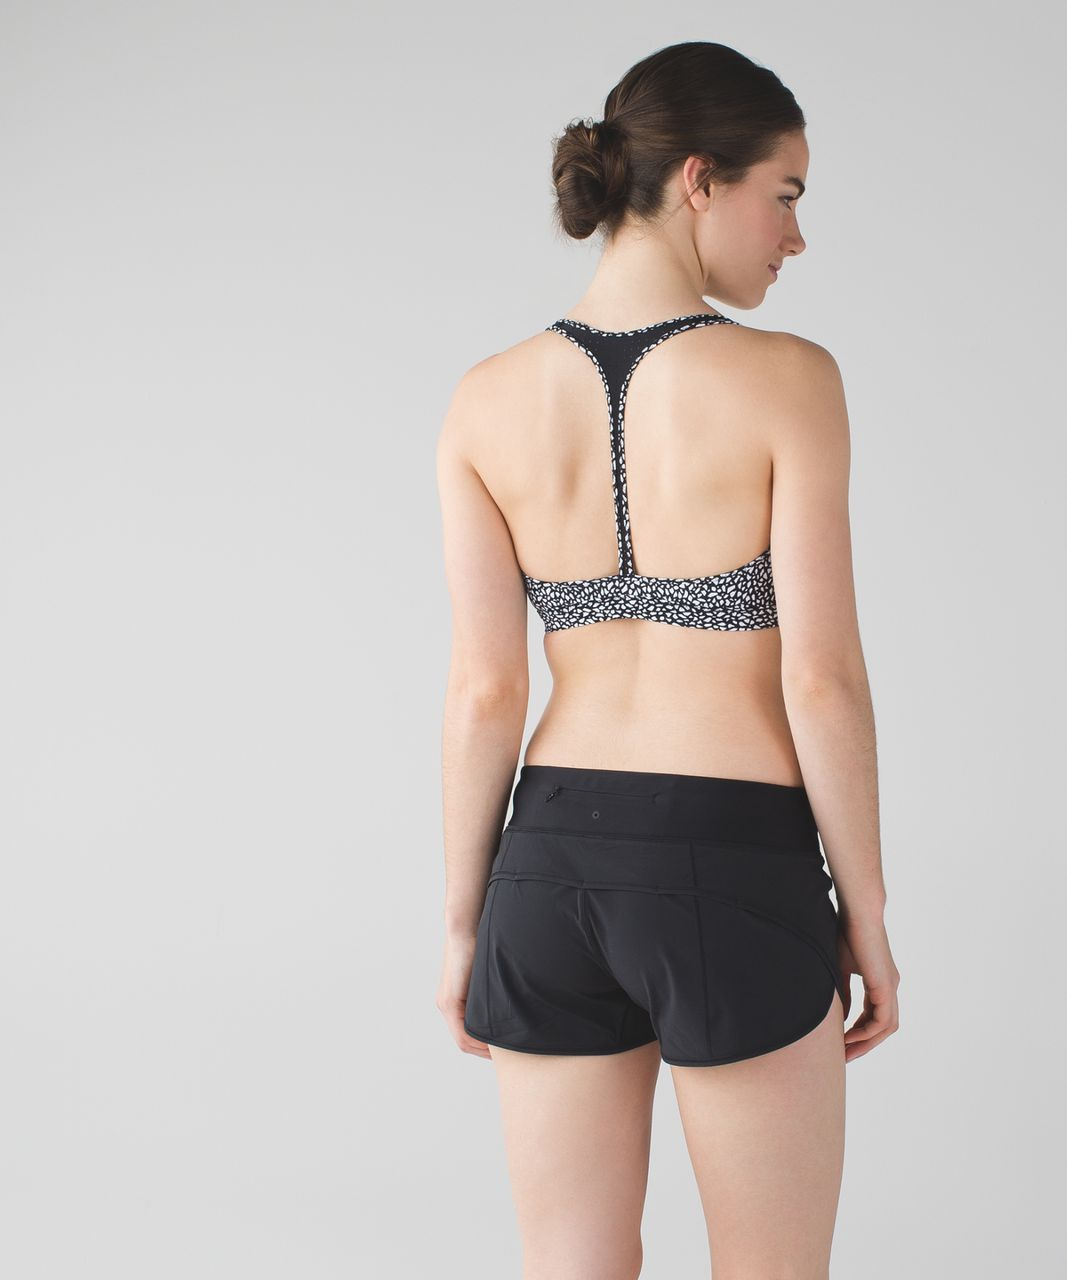 Lululemon Salty Swim Sport Top II - Miss Mosaic Black / Black